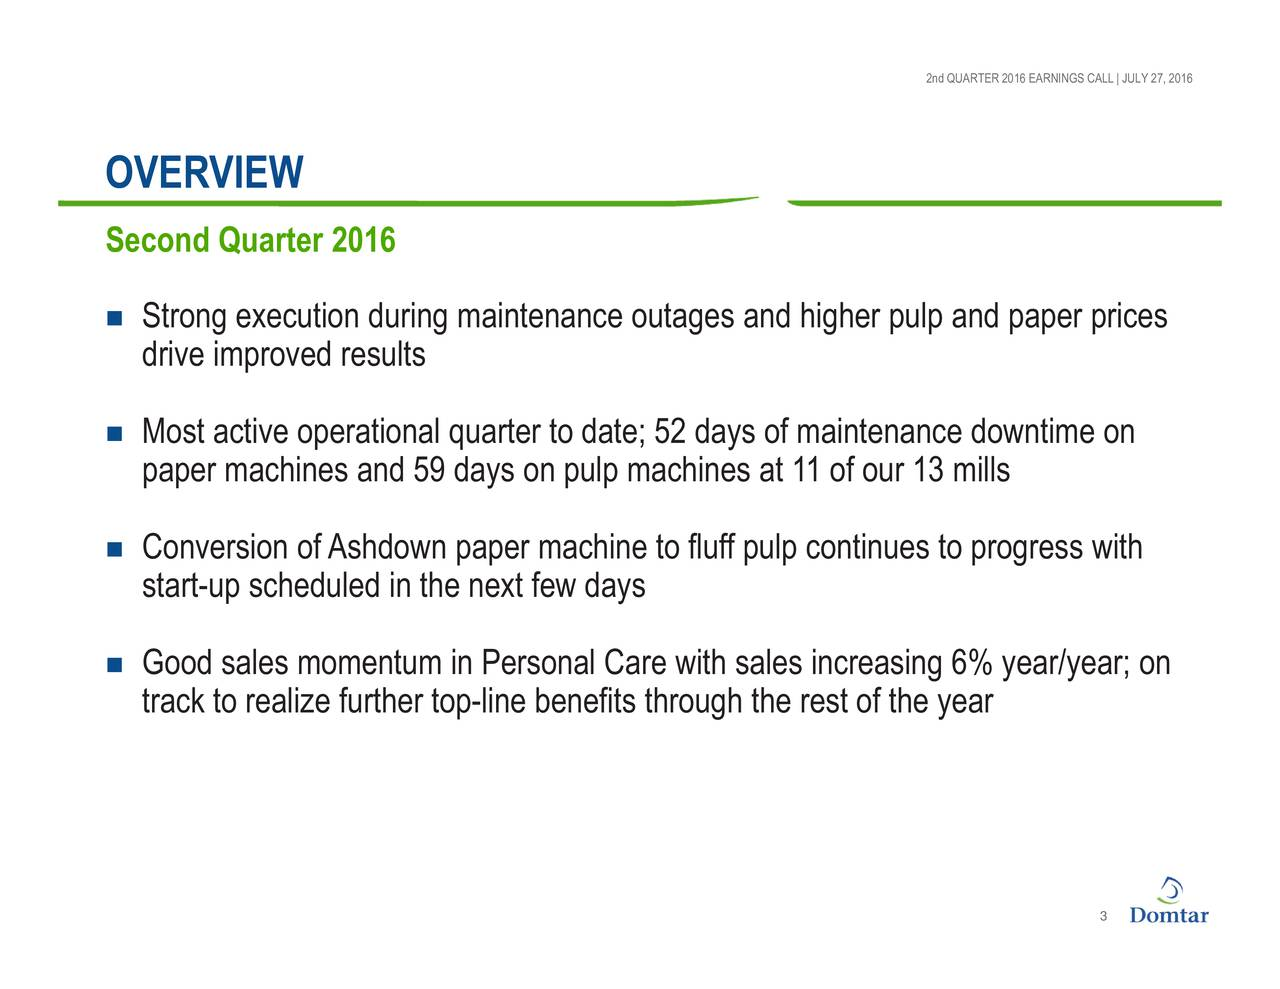 2nd QUARTER 2016 EARNINGS CALL  JULY 27, 2016 her pulp and paper pricesreasing 6% year/year; on ontinues to progress with maintenance downtime on the rest of the year Strdrive imrapedrresulsnes ata5k9dareainepultherahpneidays OVERVIEWond Quarter 2016